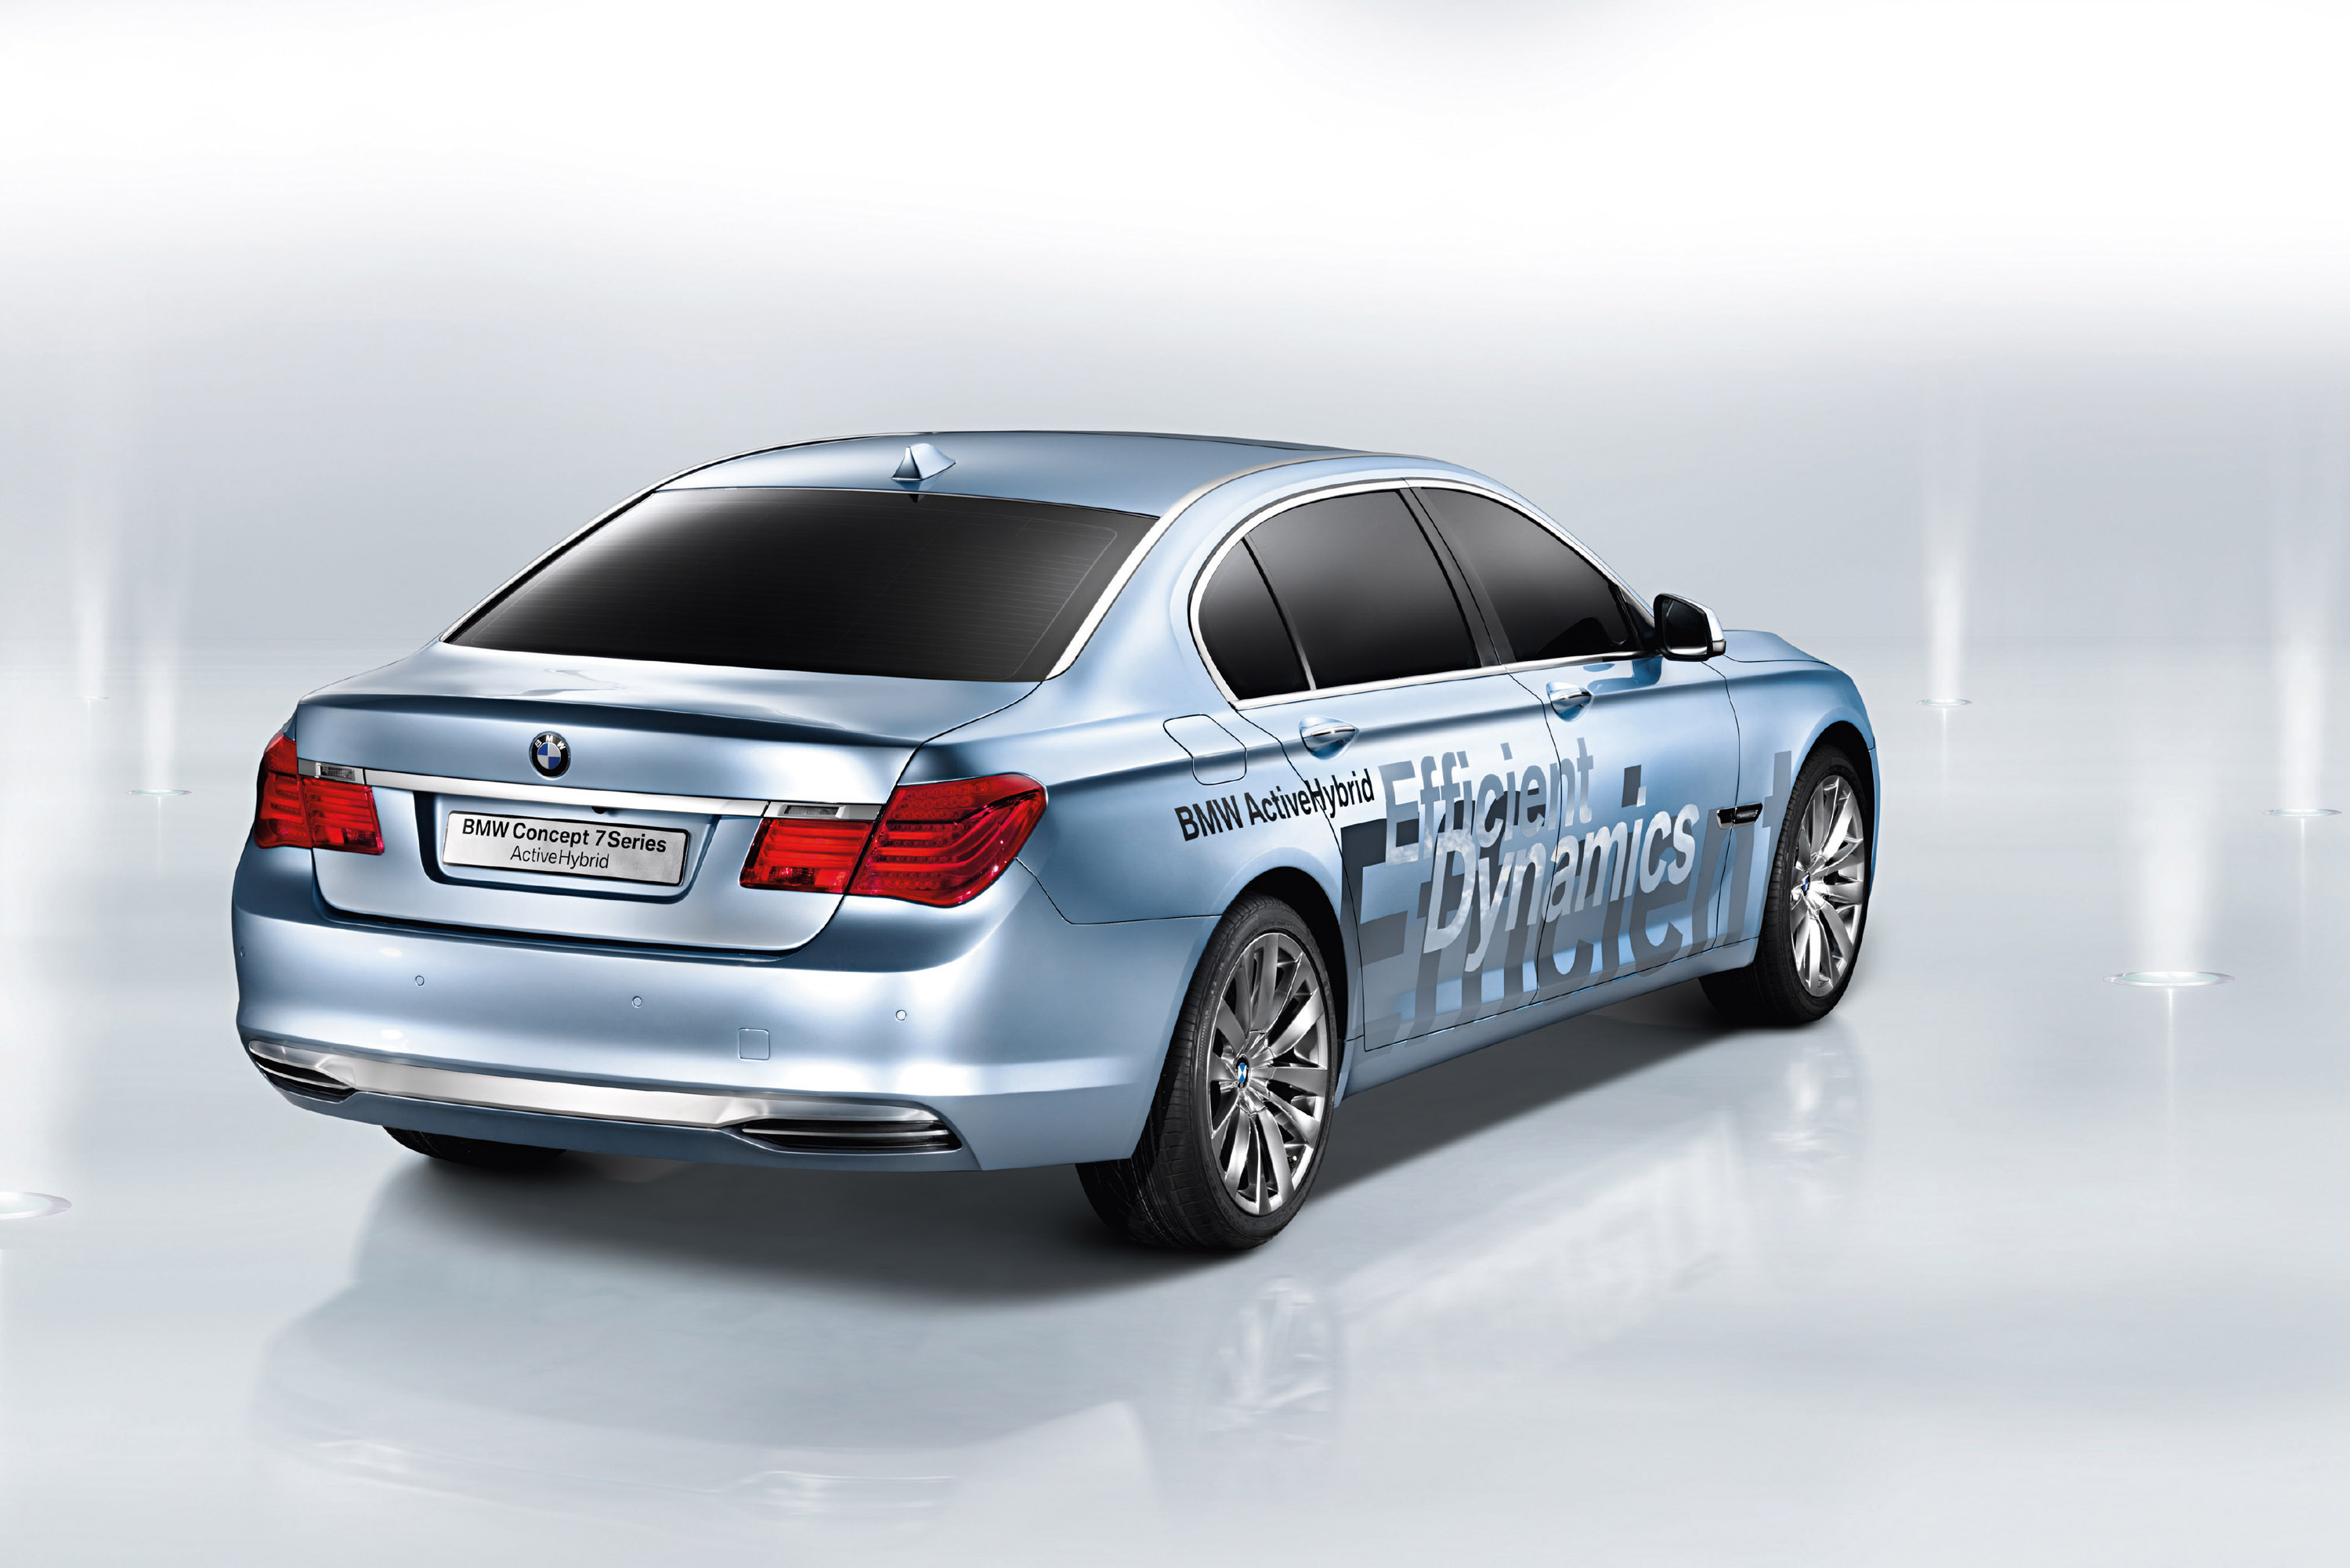 The BMW Concept 7 Series ActiveHybrid